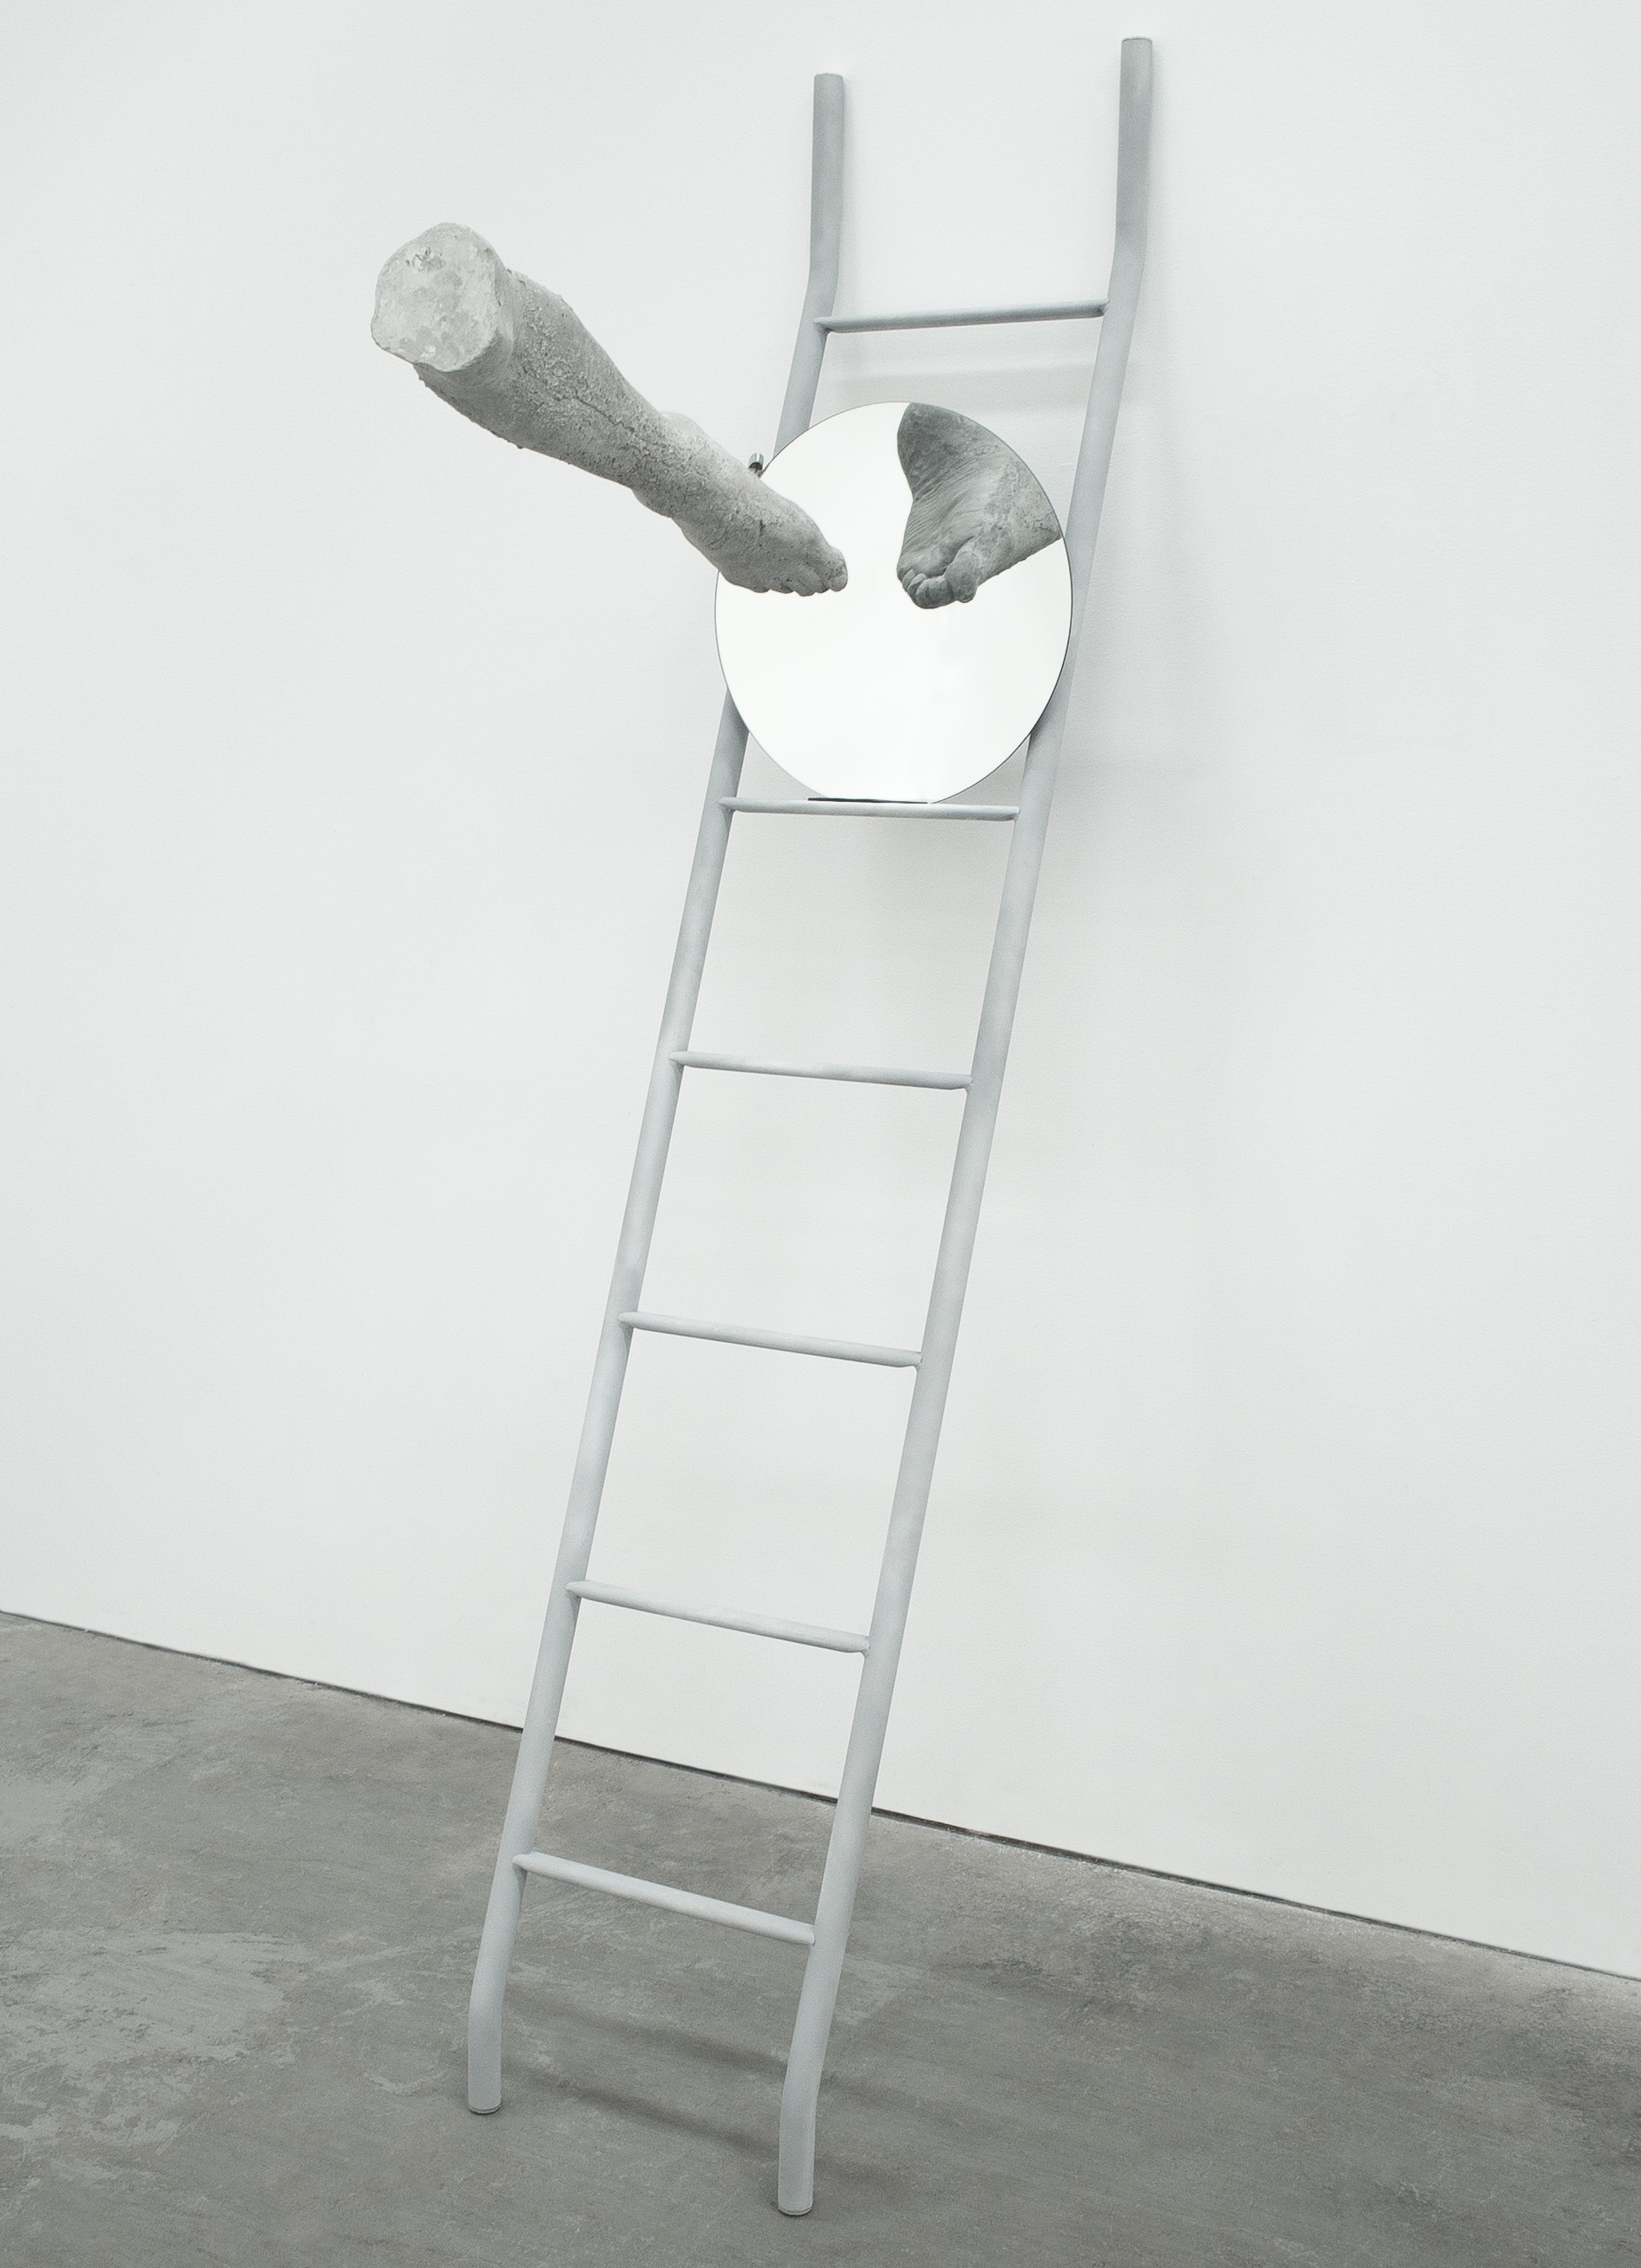 """Departure"" Cement, ladder, custom armature, rigging, parabolic mirror, 2017"